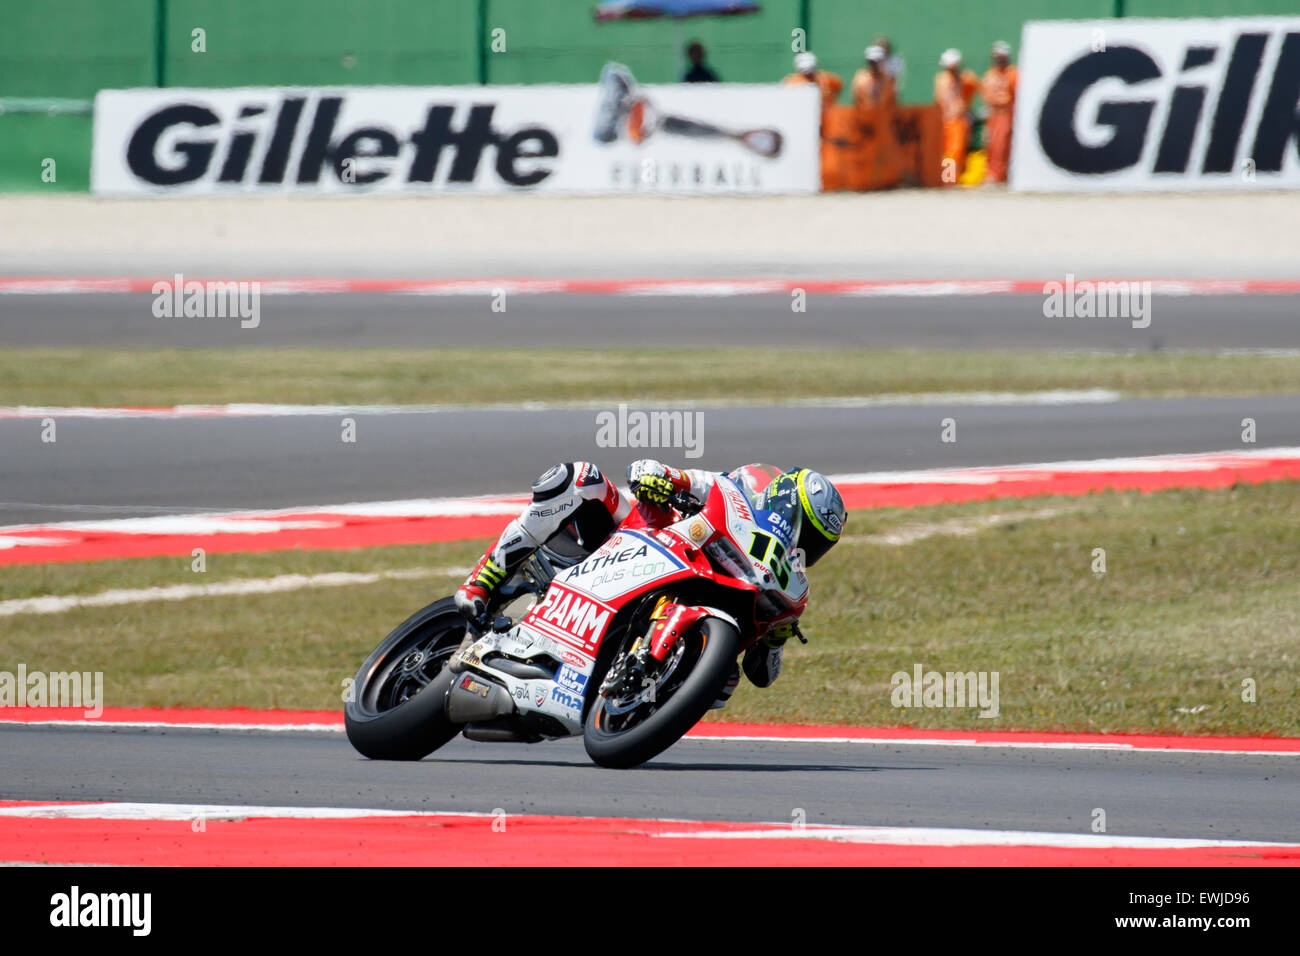 Misano Adriatico, Italy - June 20, 2015: Ducati Panigale R of Althea Racing Team, driven by BAIOCCO Matteo Stock Photo